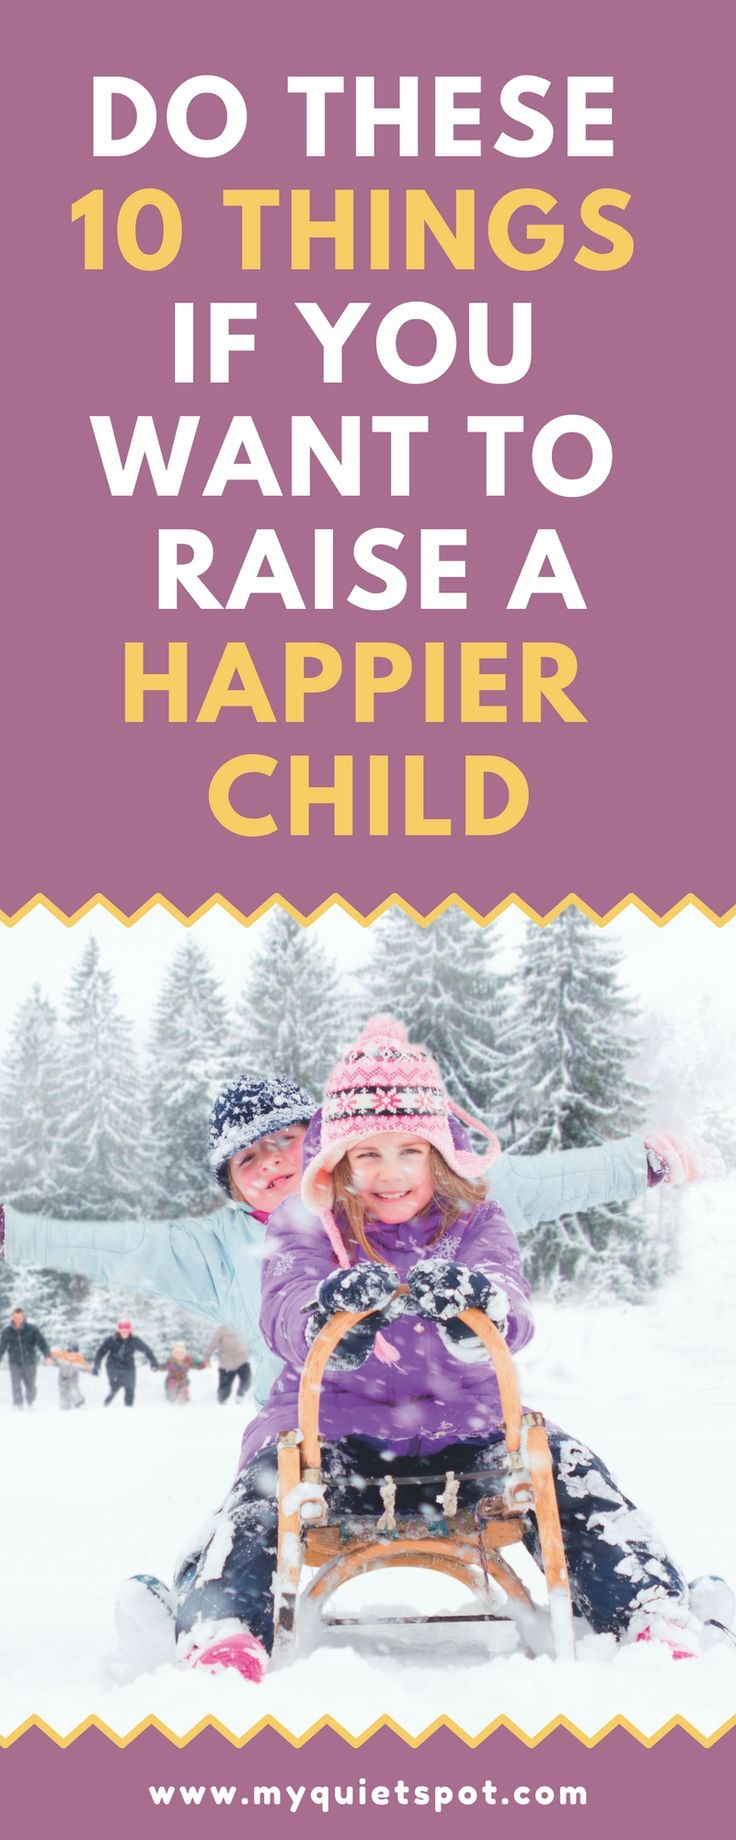 Do these 10 things if you want to raise a happier child! Easy and simple, yet powerful parenting tips. Click to read more. | parenting tip | mom advice | happy child | toddlers | kids |